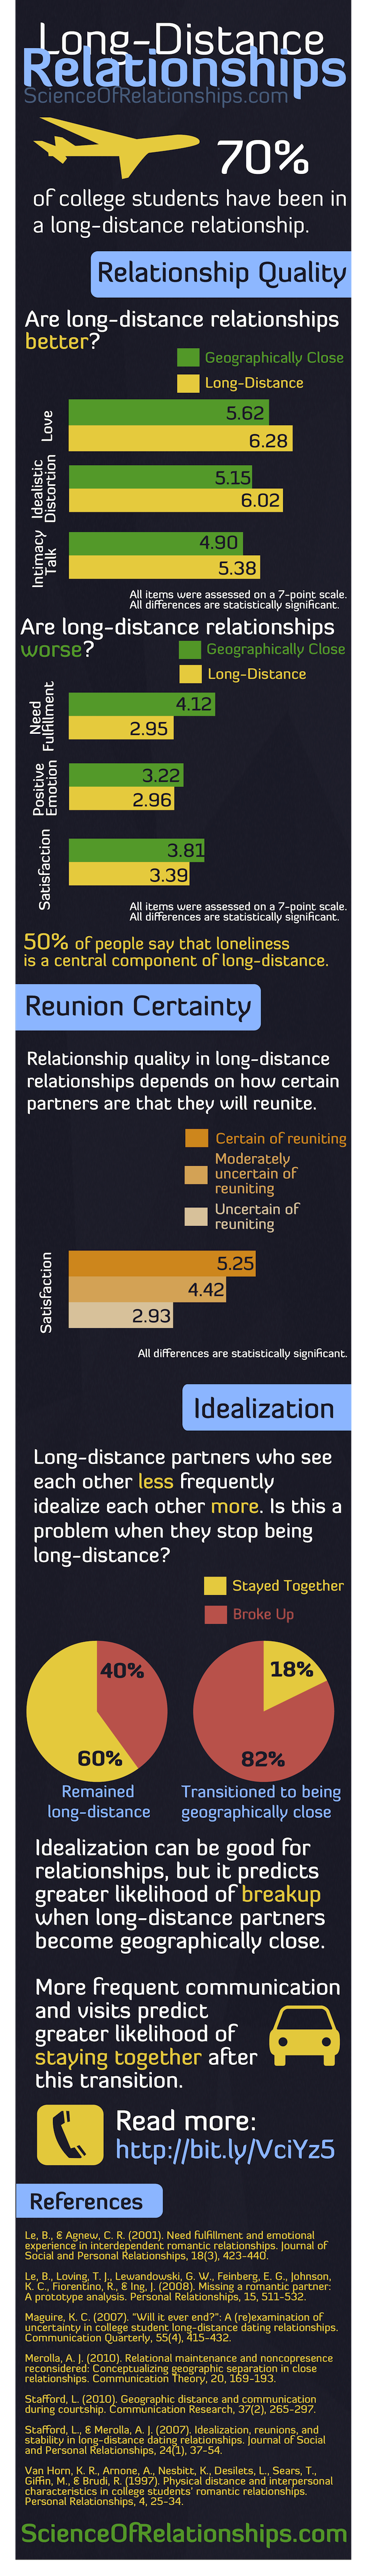 Long Distance Relationship Traits